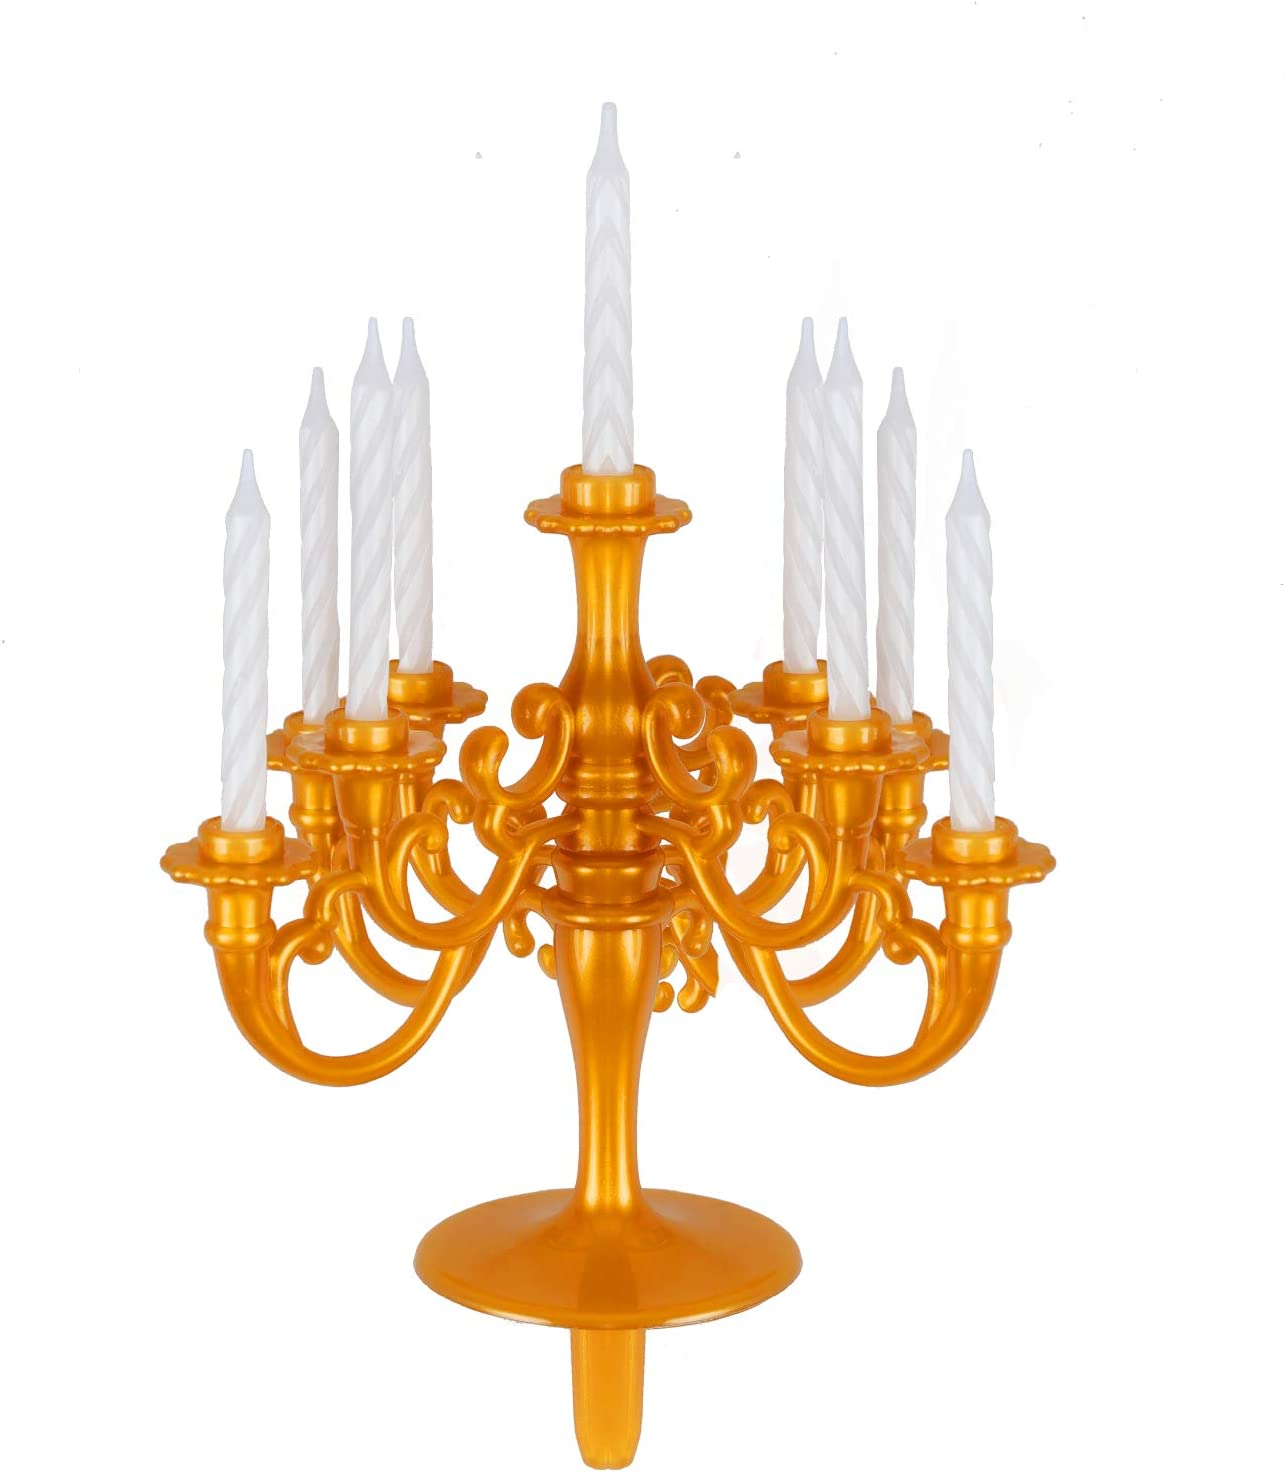 Modern Candlestick Holder, Tall Candle Stand for Wedding, Ceremony, Party, Birthdays, Cake Topper, Plastic Candelabra 9- Pc Threaded Candlestick Holder (Gold-V2)